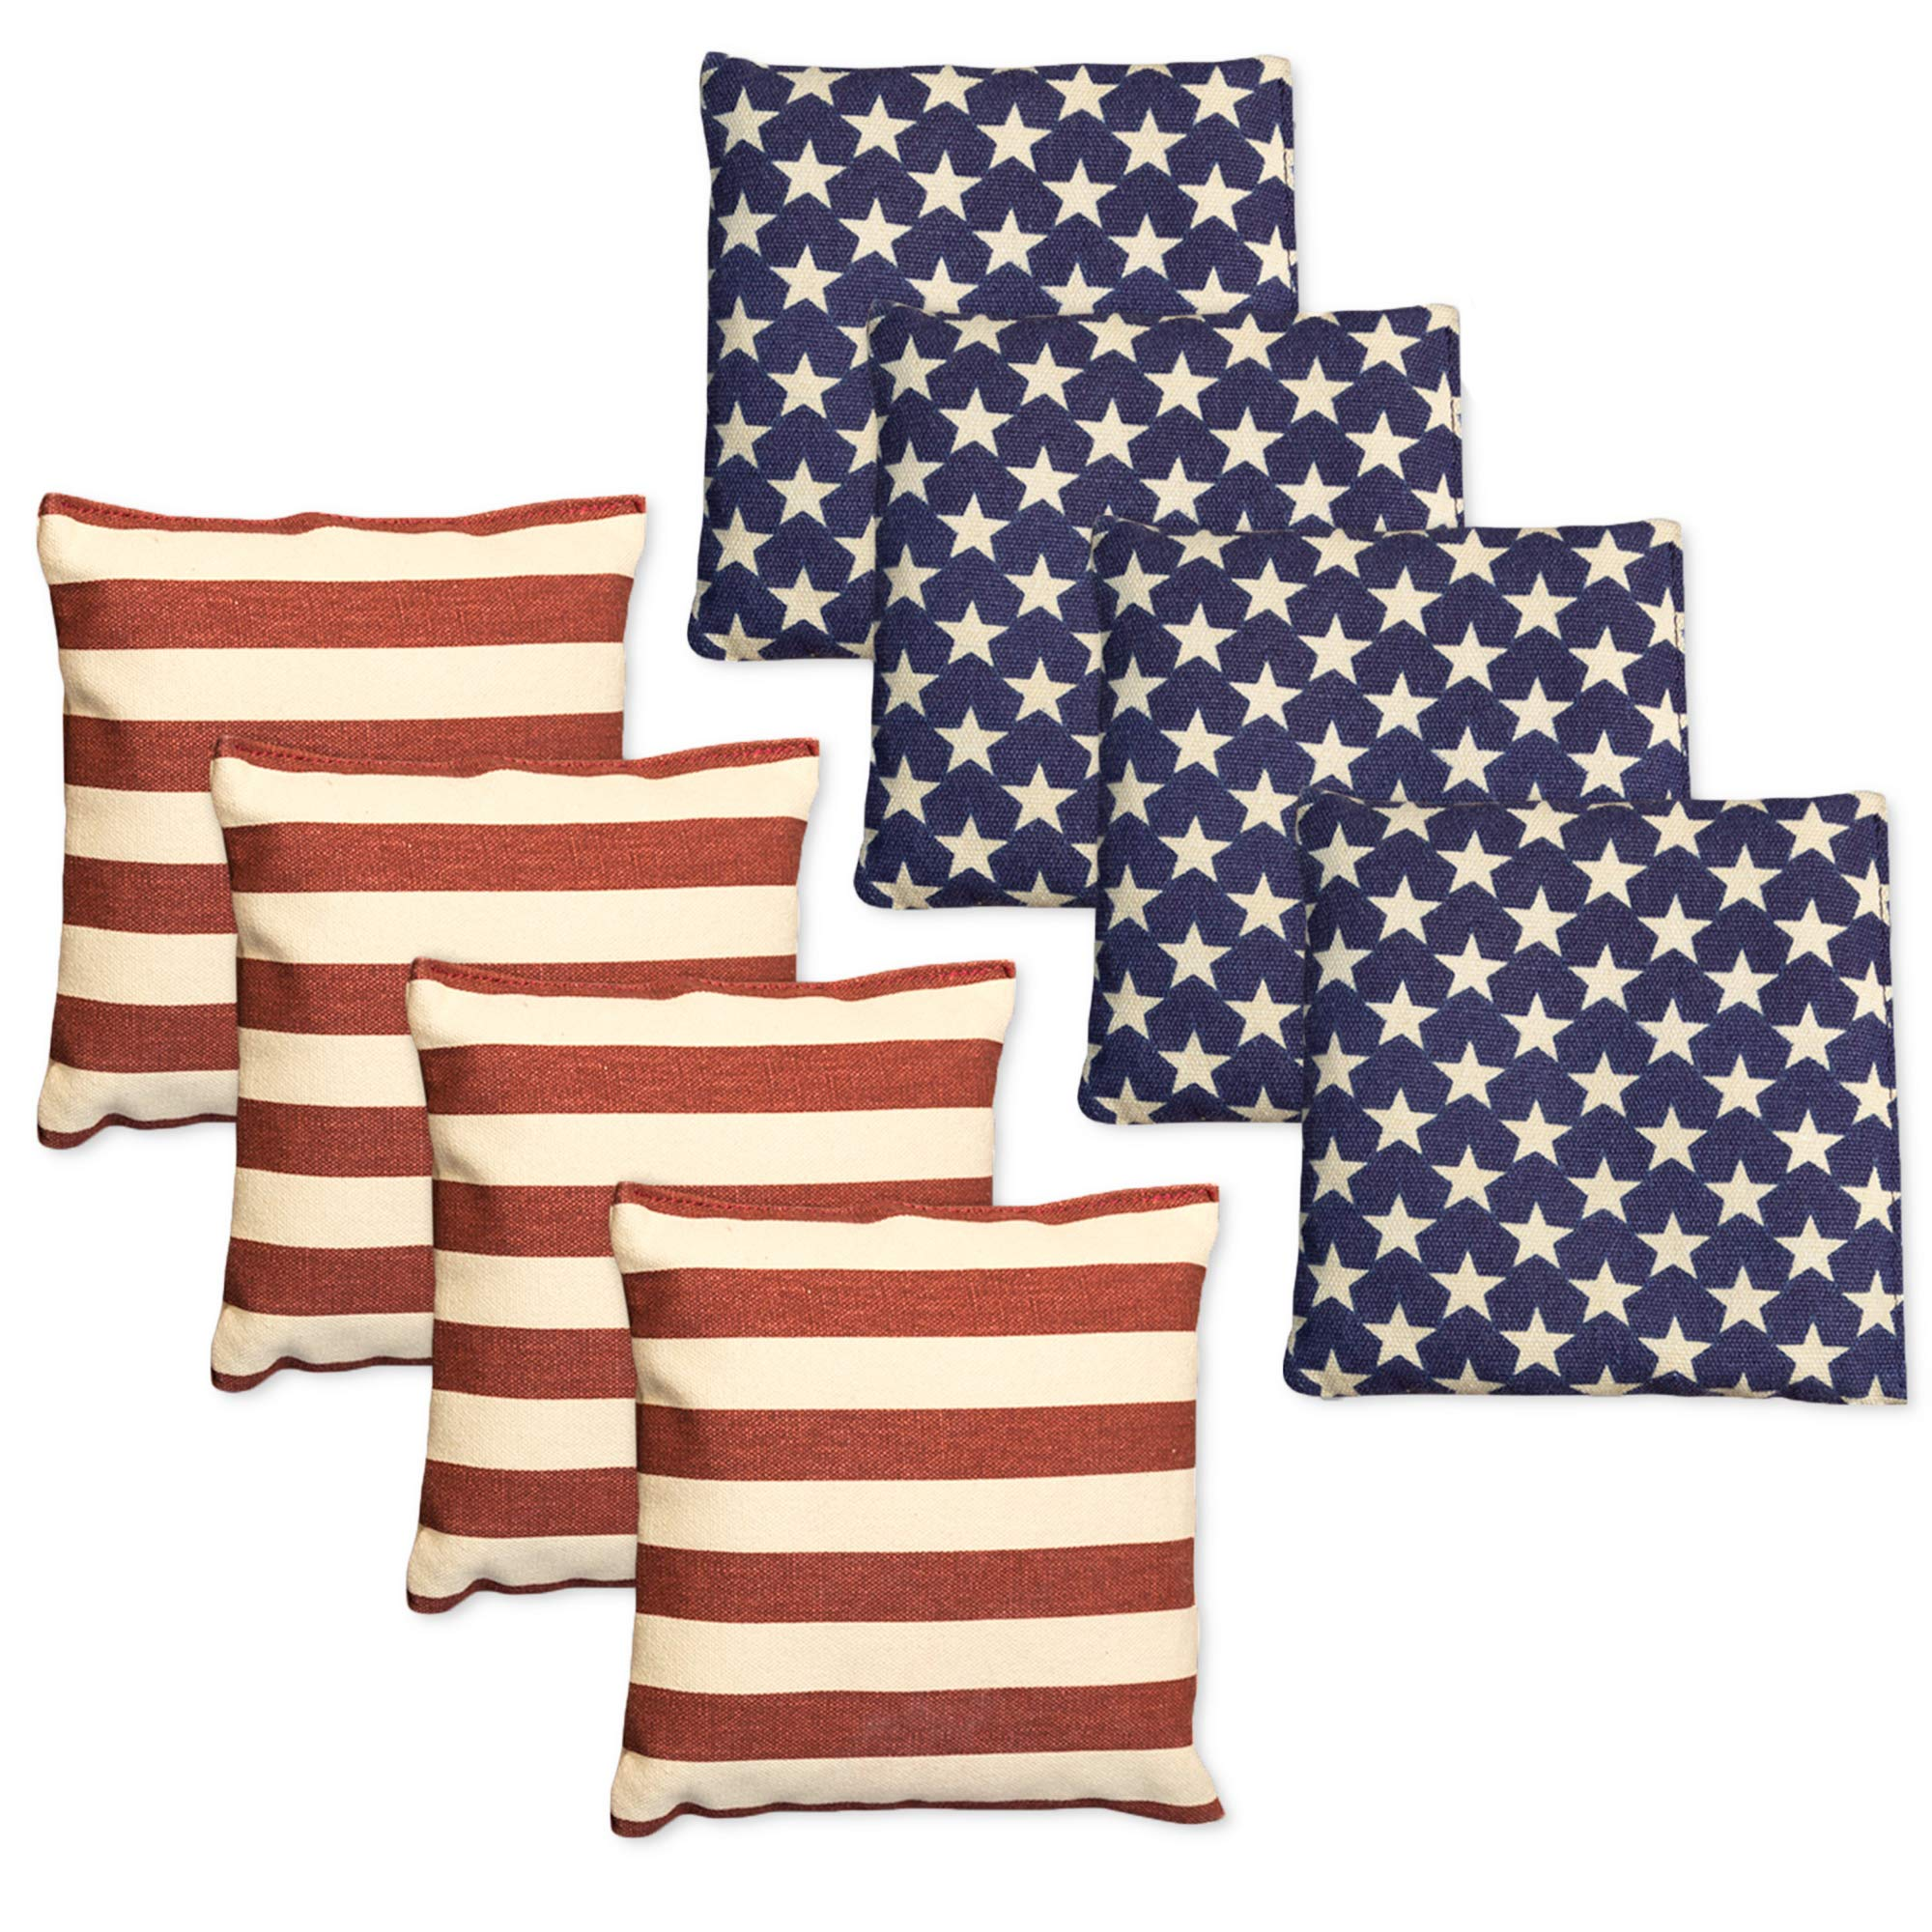 Weatherproof Duck Cloth Cornhole Bags - Set of 8 Bean Bags for Corn Hole Game - Regulation Size & Weight - Made with Corn-Shaped Synthetic Corn (Stars & Stripes)